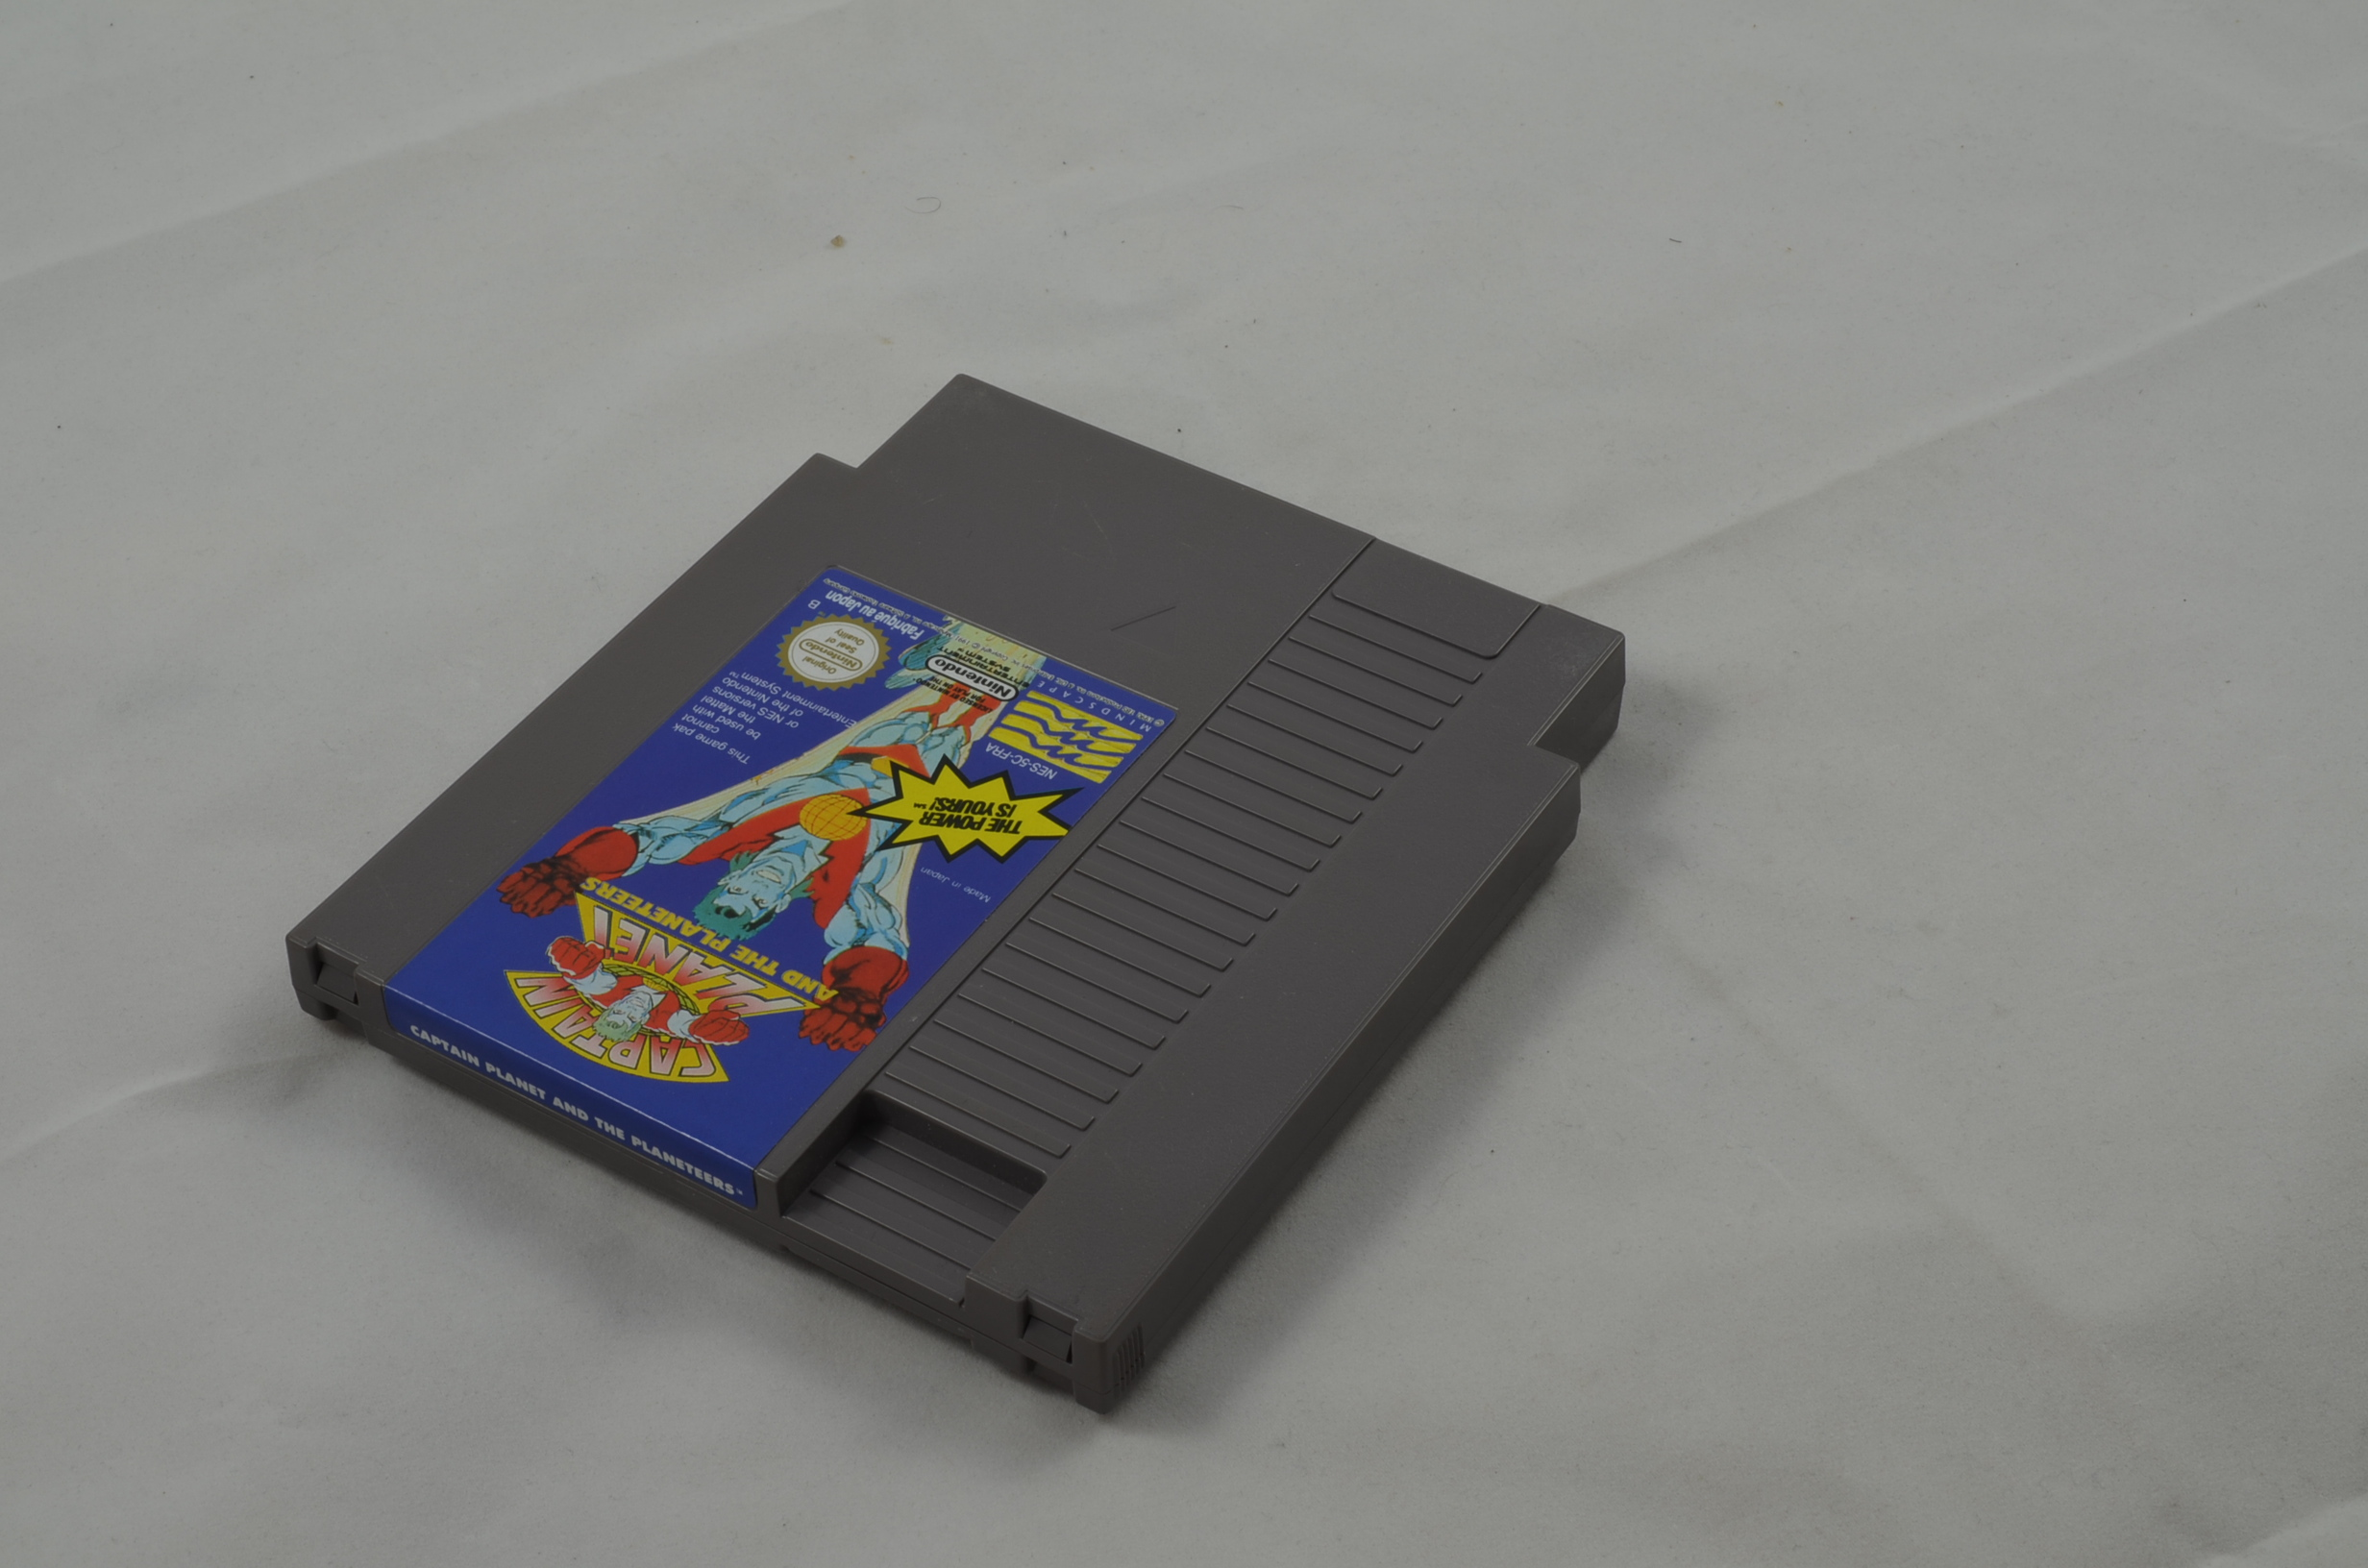 Produktbild von Captain Planet and the Planeteers NES Spiel